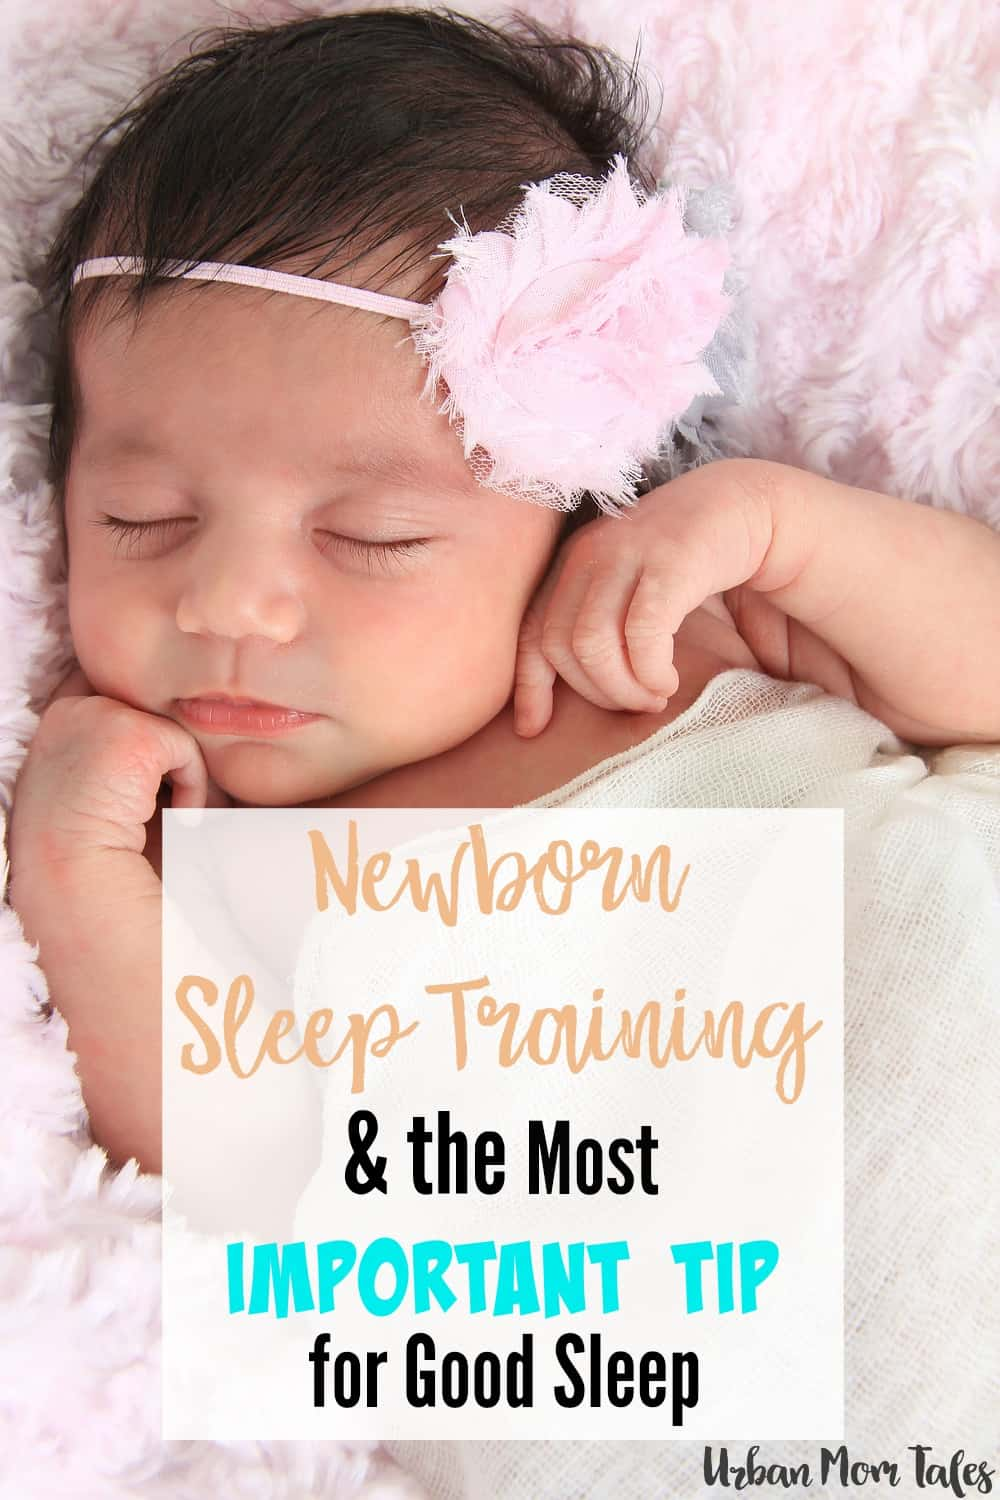 Newborn Sleep Training that you can start from Day 1. The most important tip for good sleep that prevents future sleep problems.